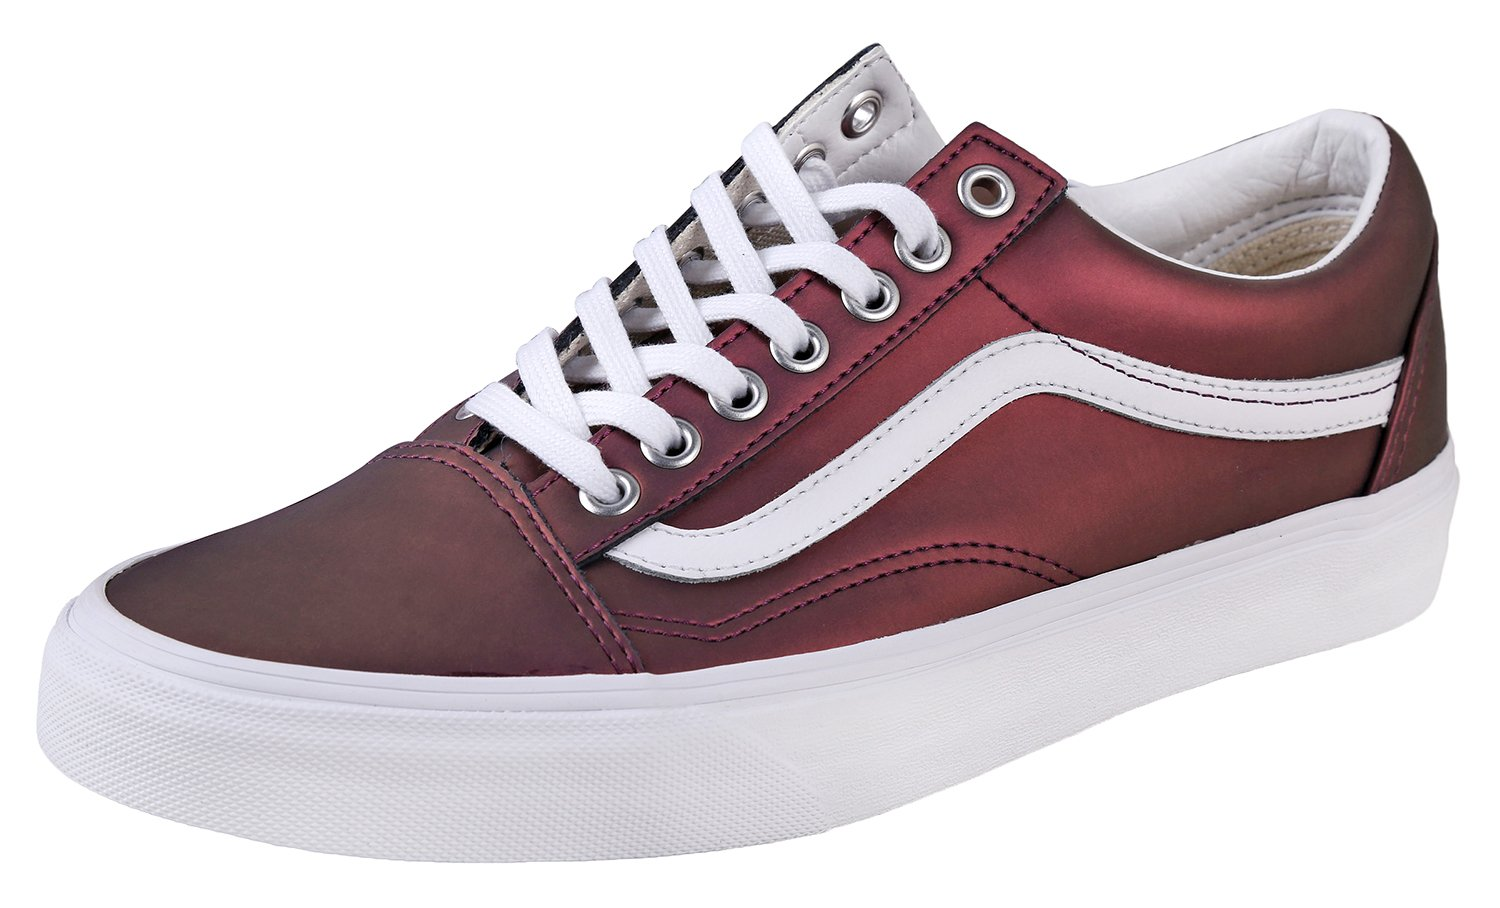 Vans Old Skool Unisex Adults' Low-Top Trainers B074HCC3FV 7 M US Women / 5.5 M US Men|Red/Gold